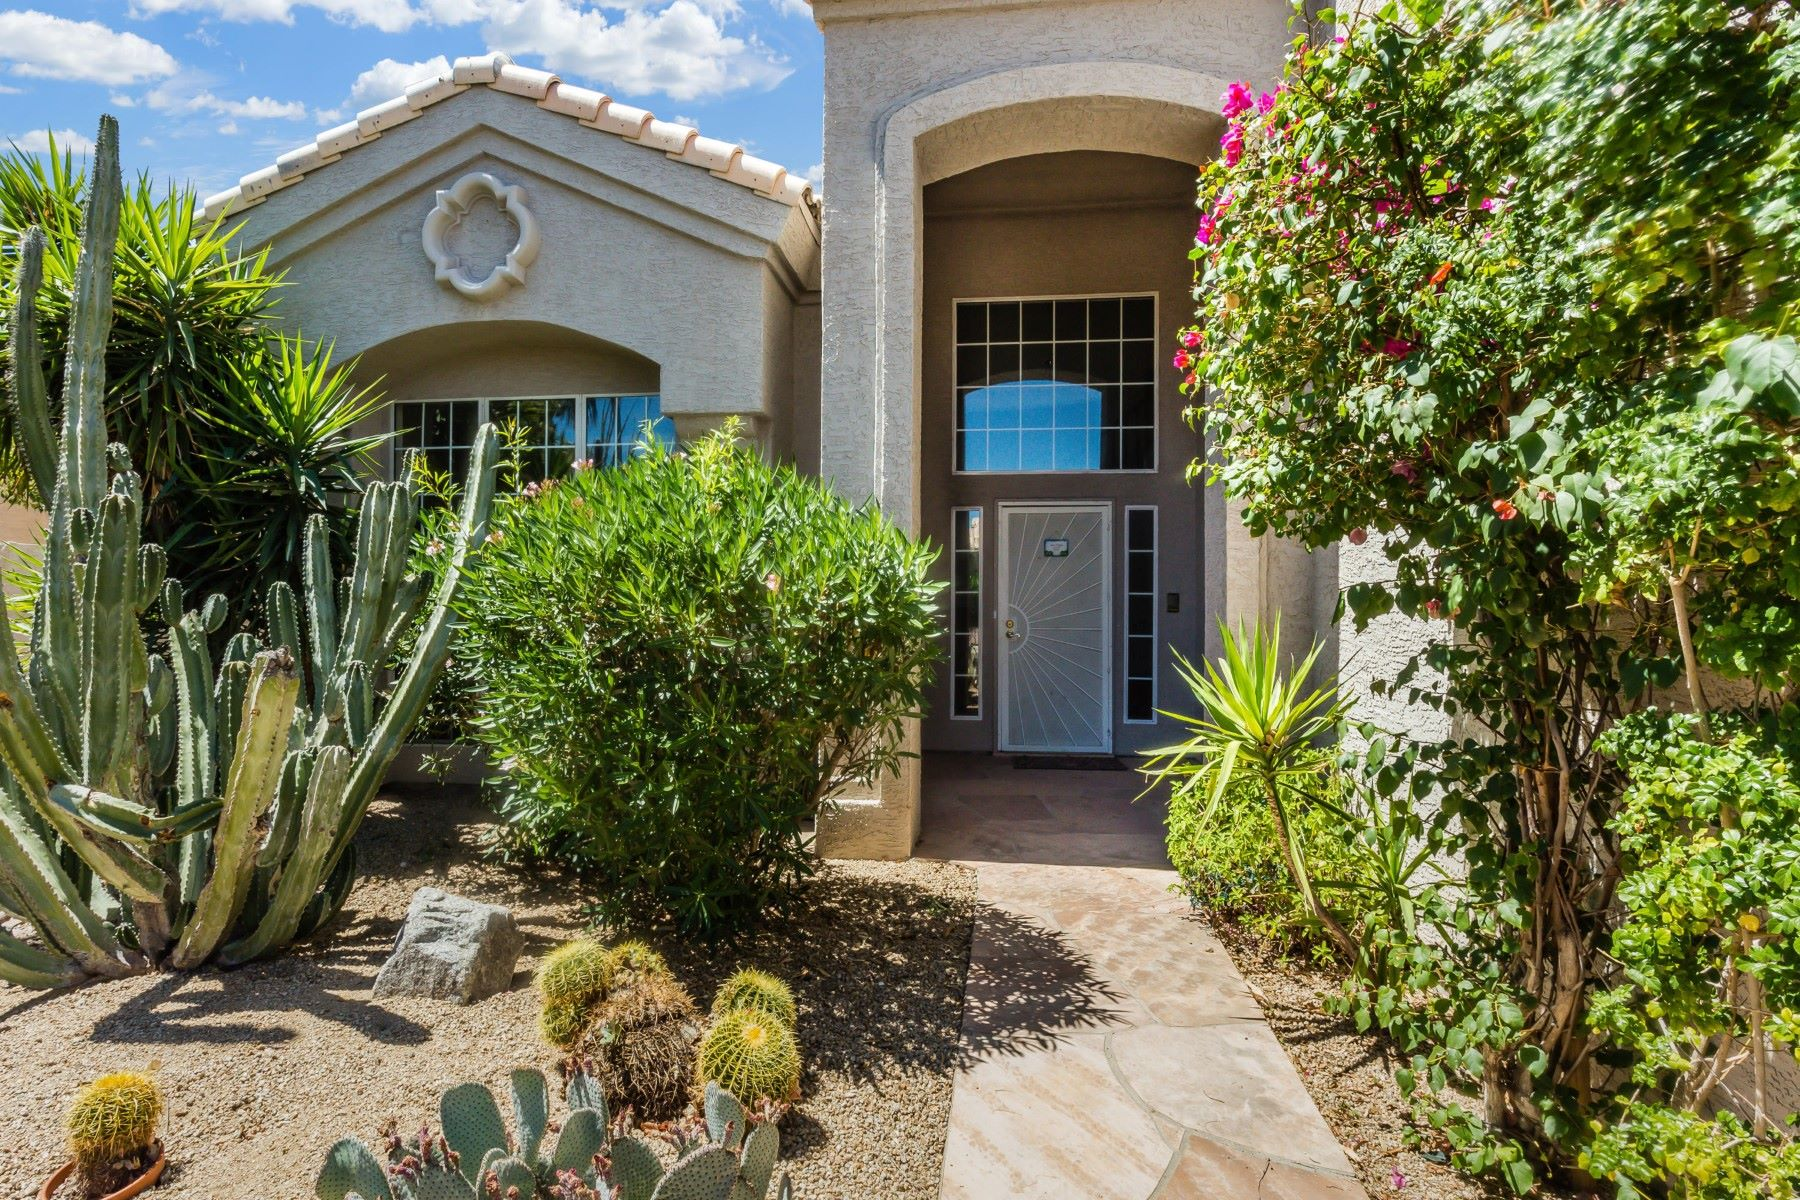 Single Family Home for Sale at Gorgeous home in Mountain Park Ranch 4019 E Desert Flower Ln Phoenix, Arizona, 85044 United States